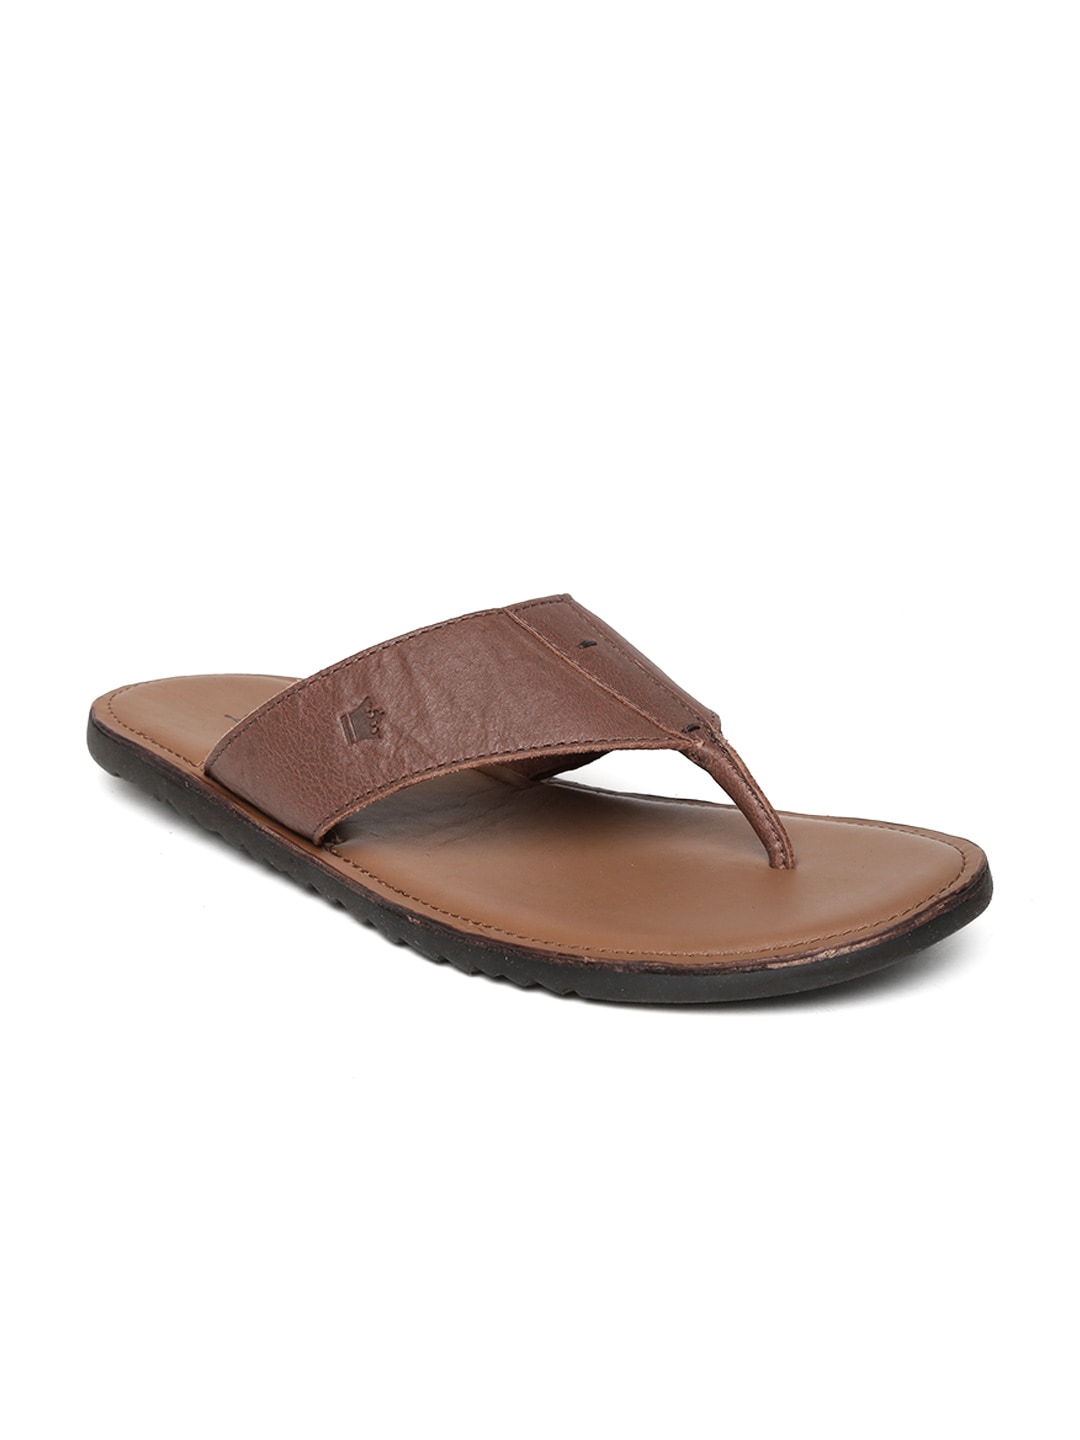 4f6356950f2b Buy Van Heusen Men Brown Leather Sandals - Sandals for Men 1218059 ...